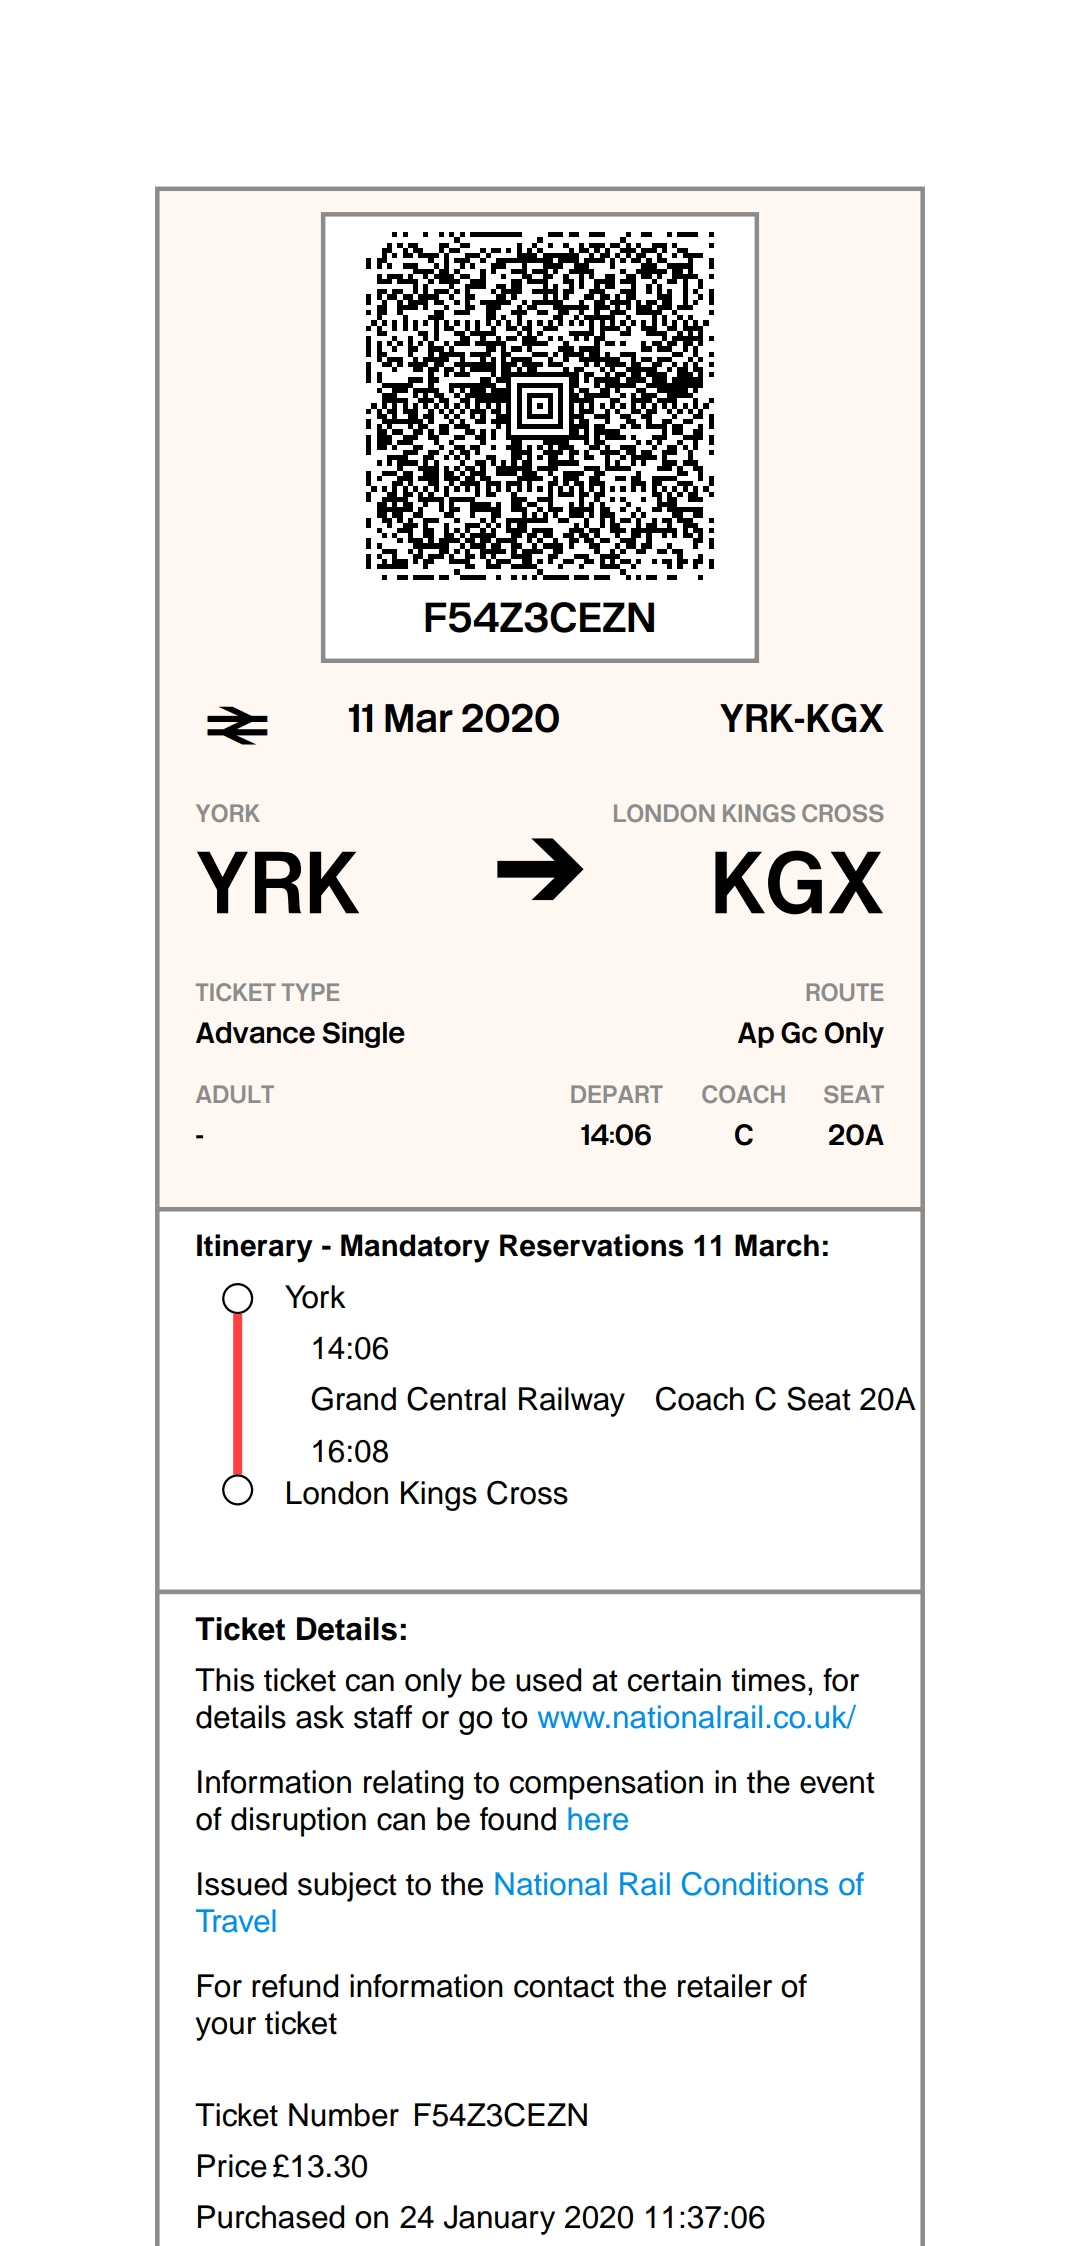 PDF display of eticket